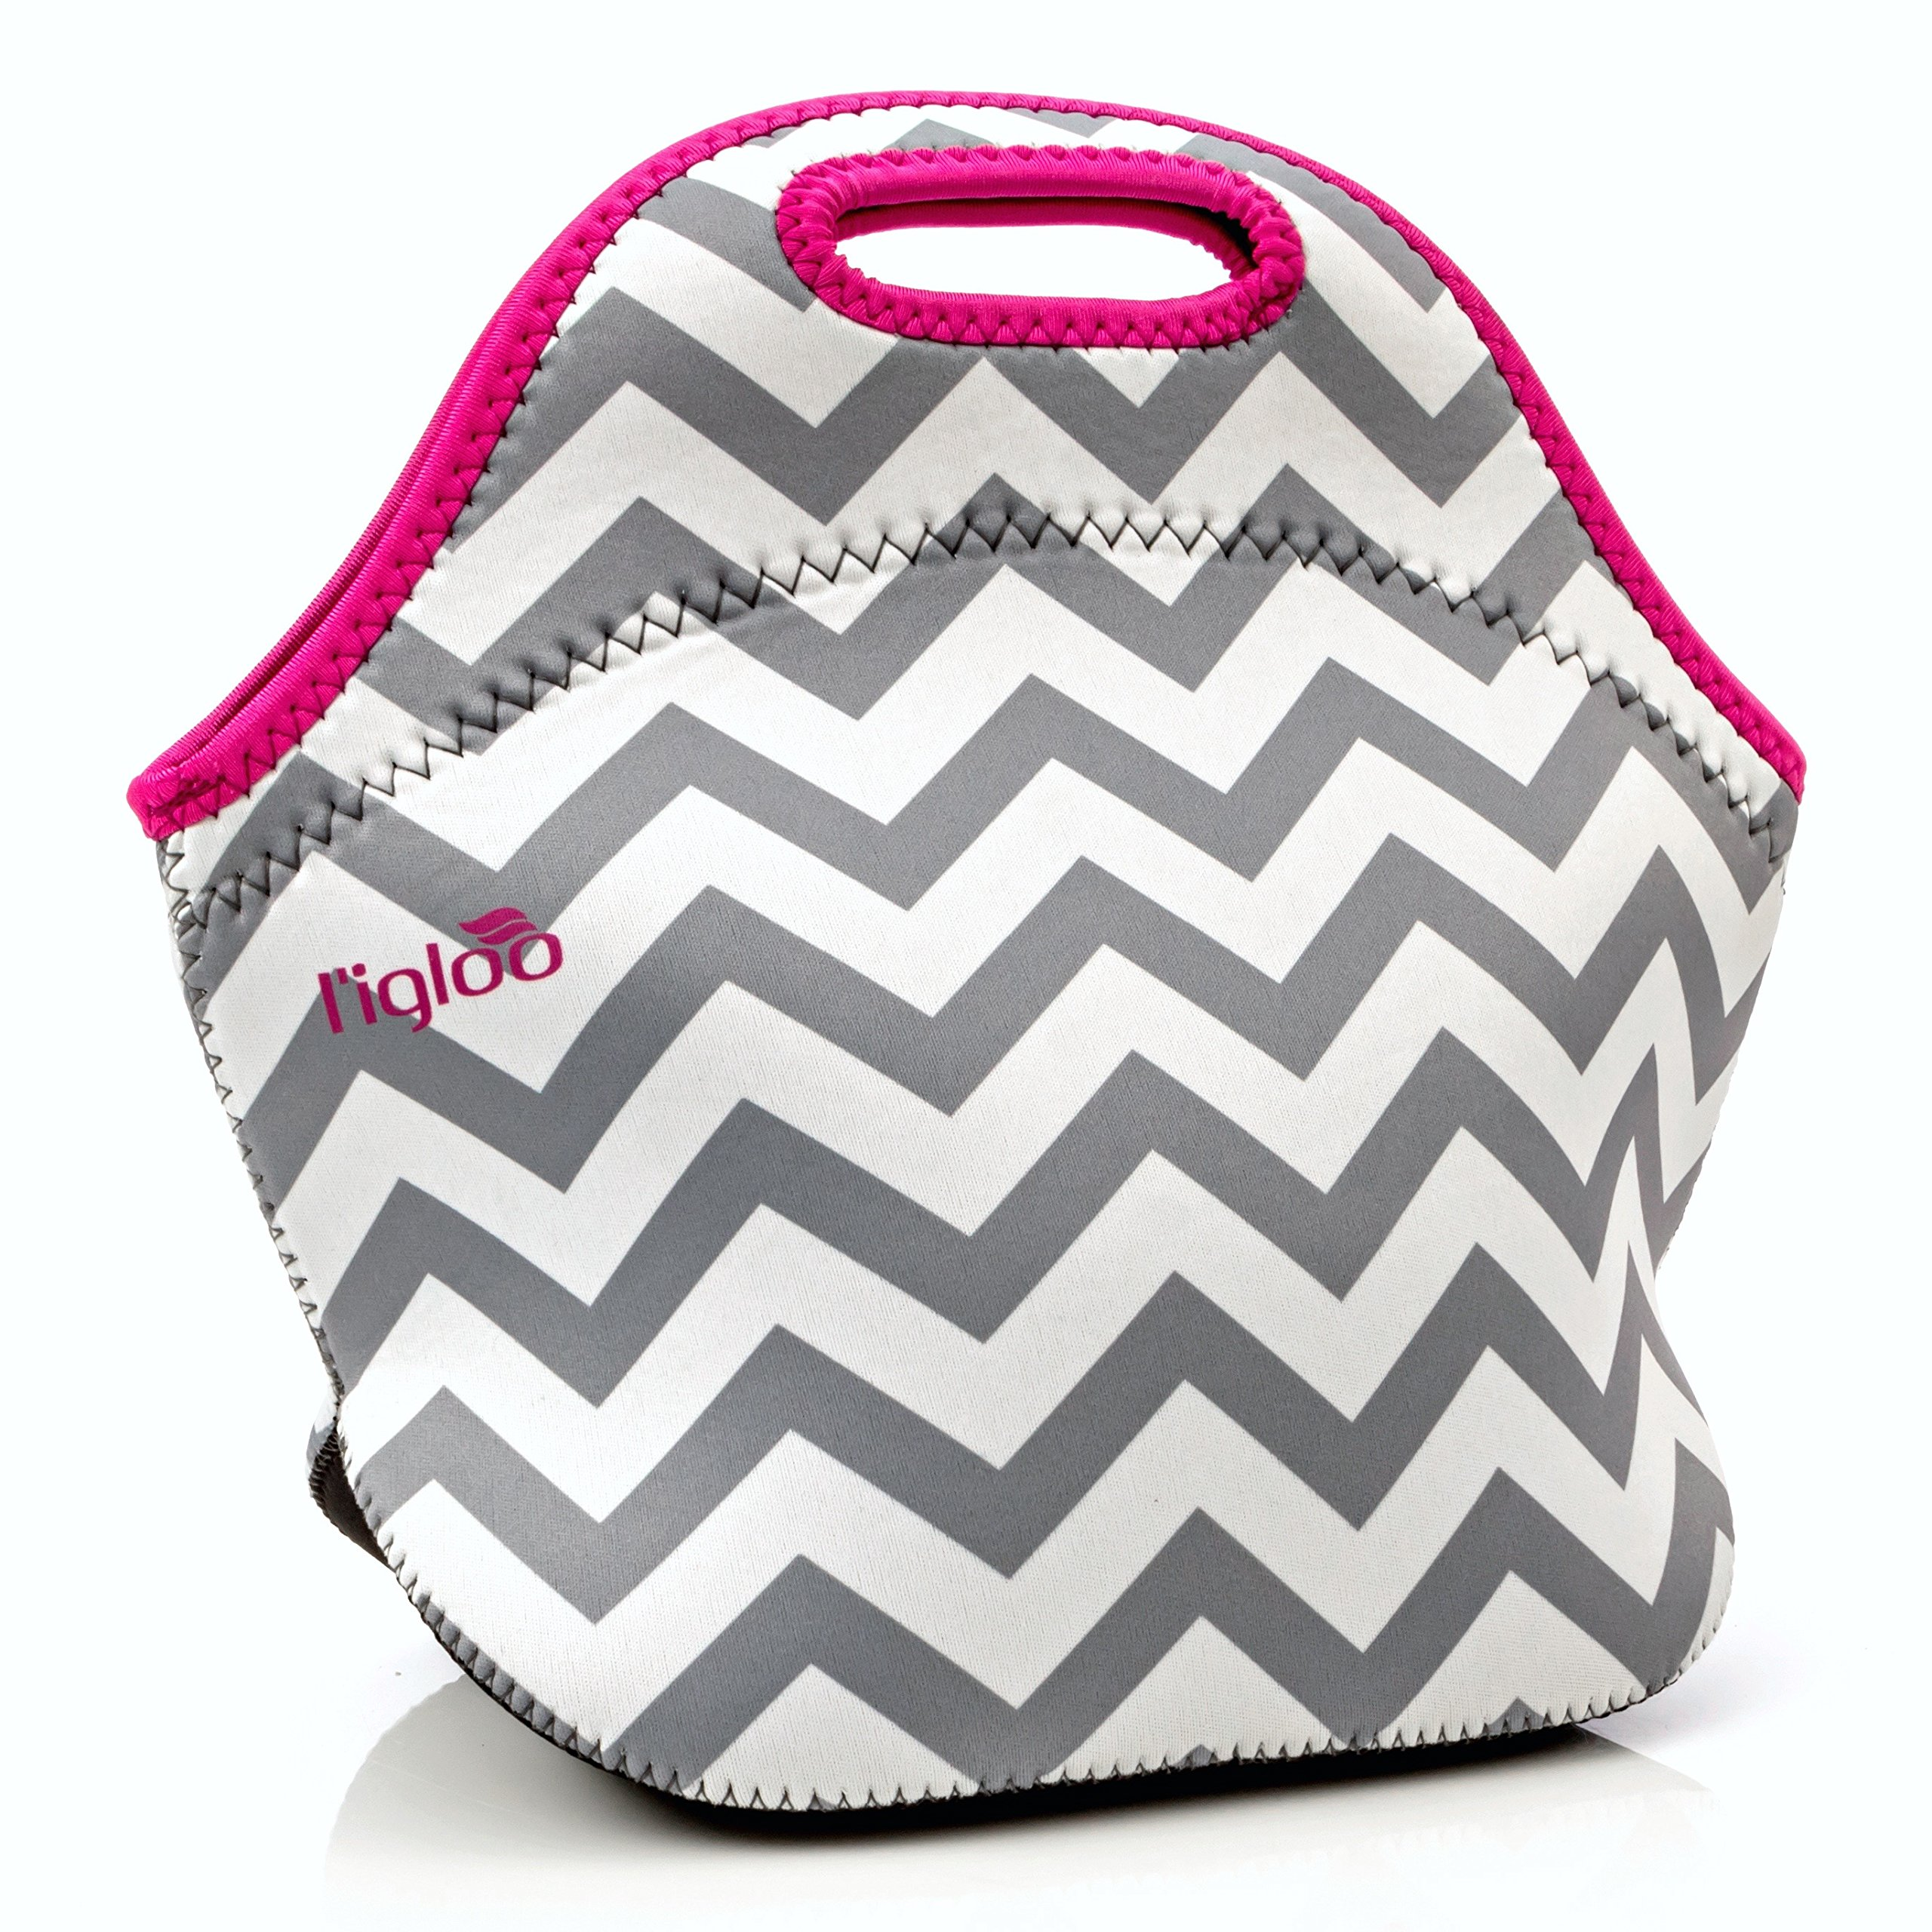 l'igloo Deluxe Neoprene Insulated Lunch Bag Extra Thick Lunch Box Tote Heavy Duty Zipper Use For Snacks, Baby Bottle Bag, Six Pack Bottle Carrier Cooler (Gray chevron/pink trim)